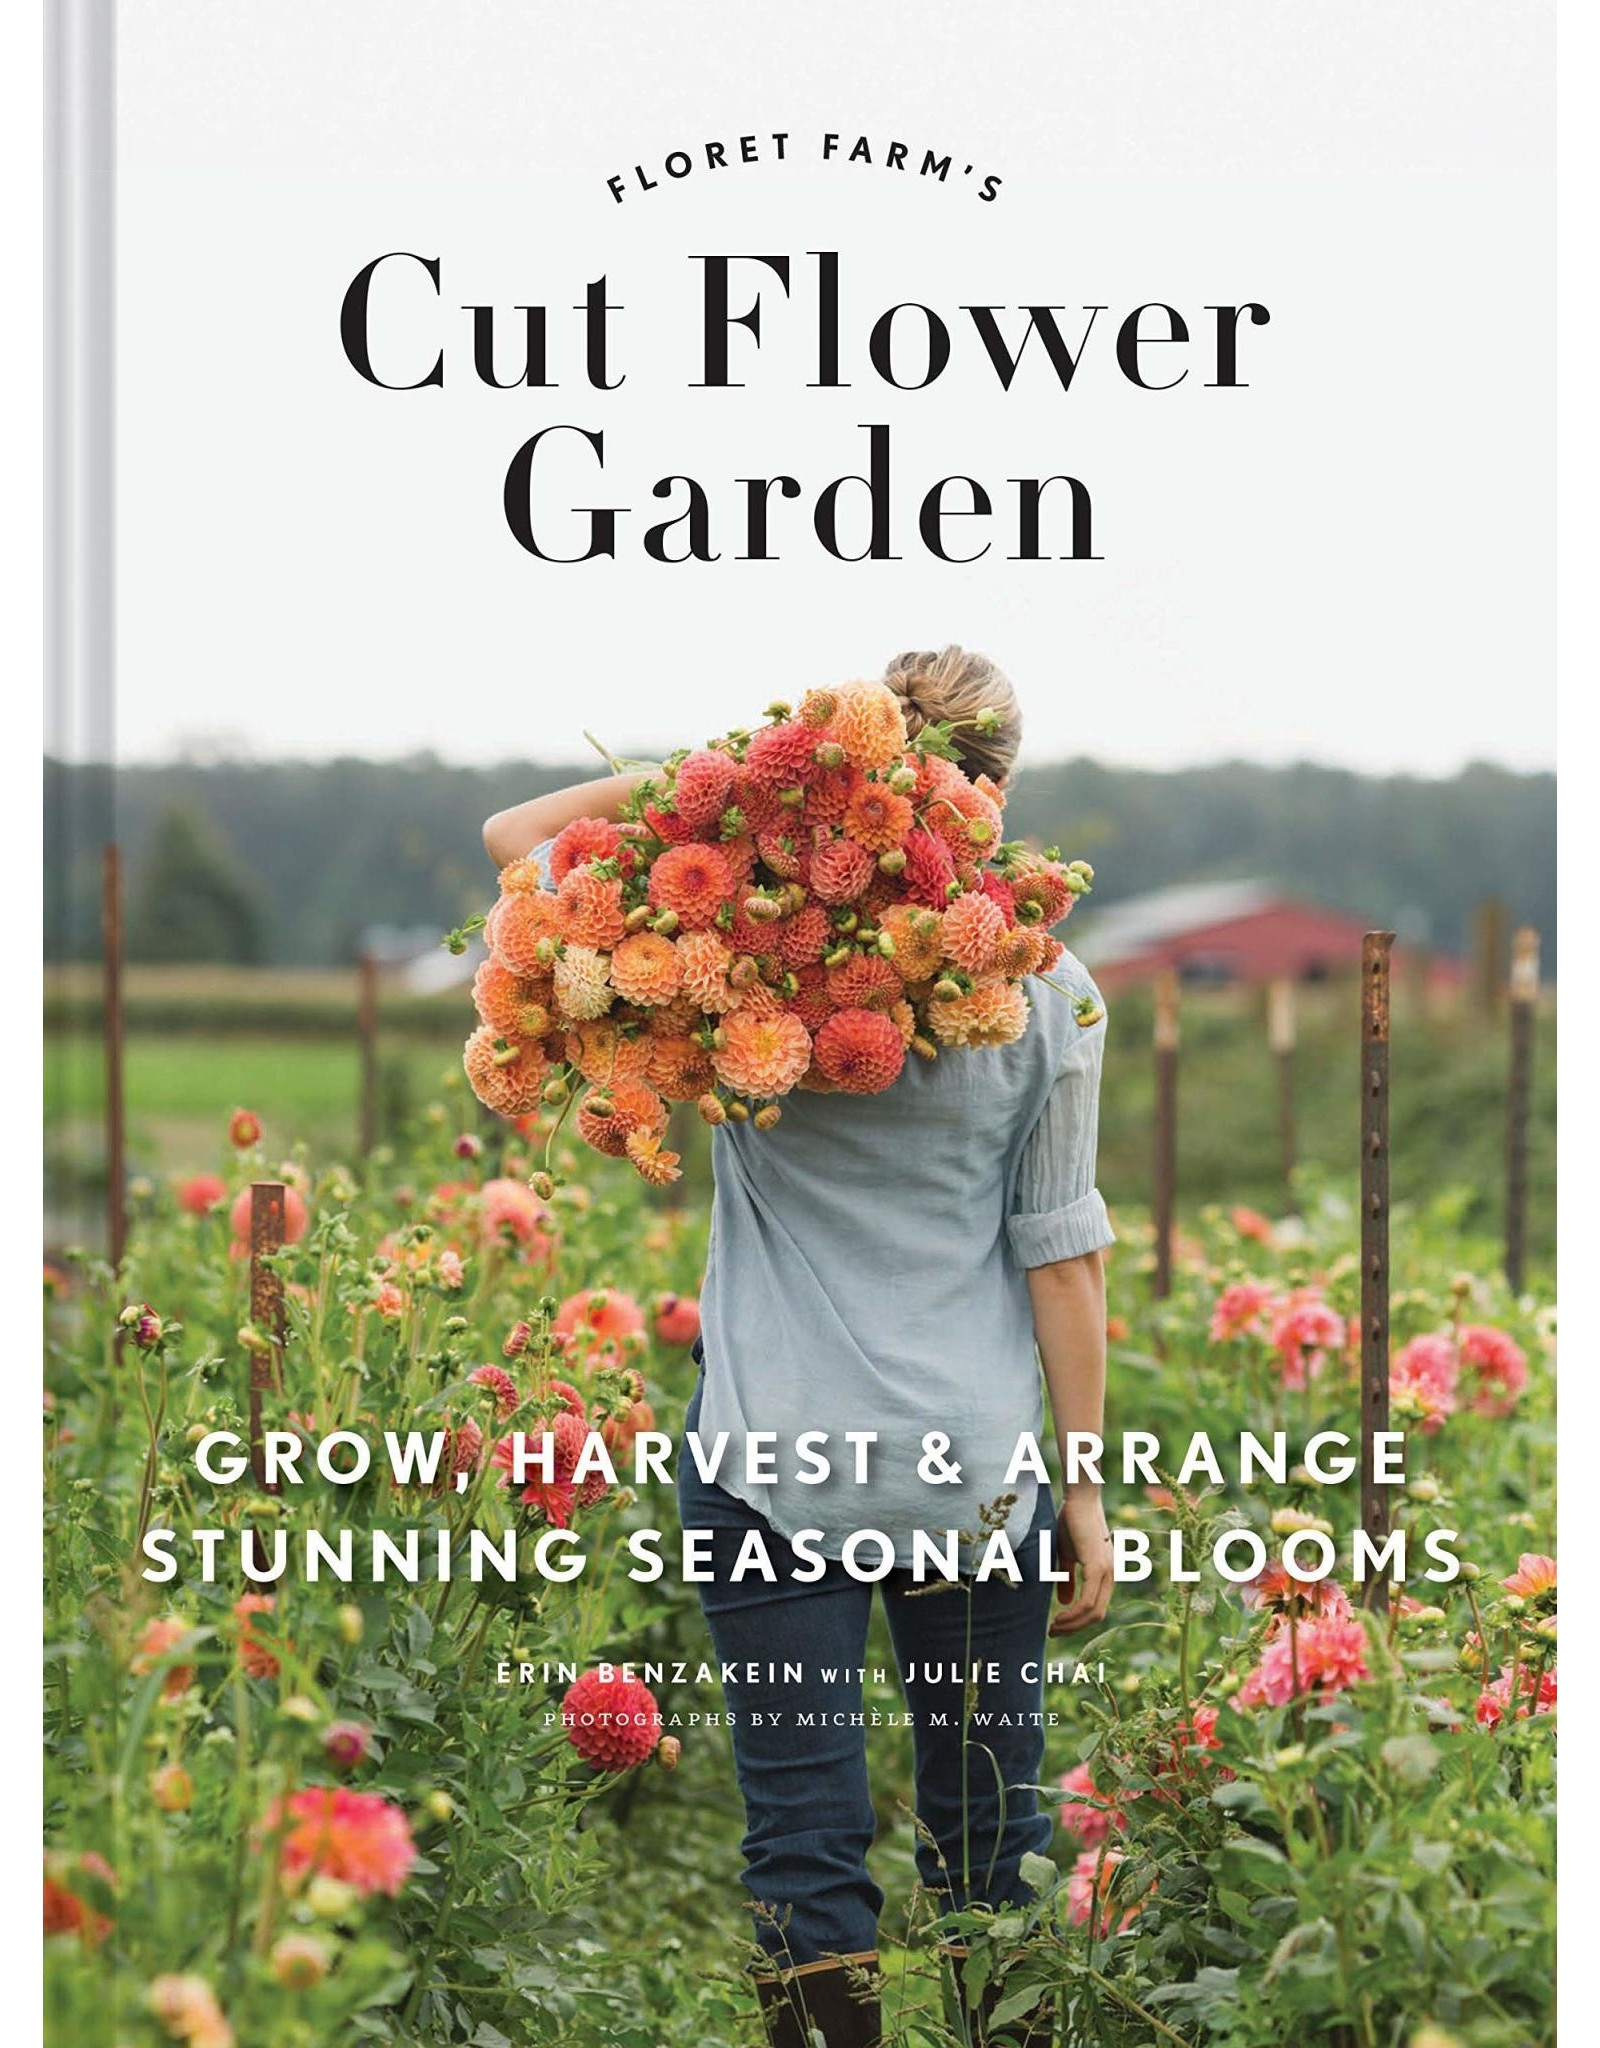 Chronicle Books Floret Farm's Cut Flower Garden Book